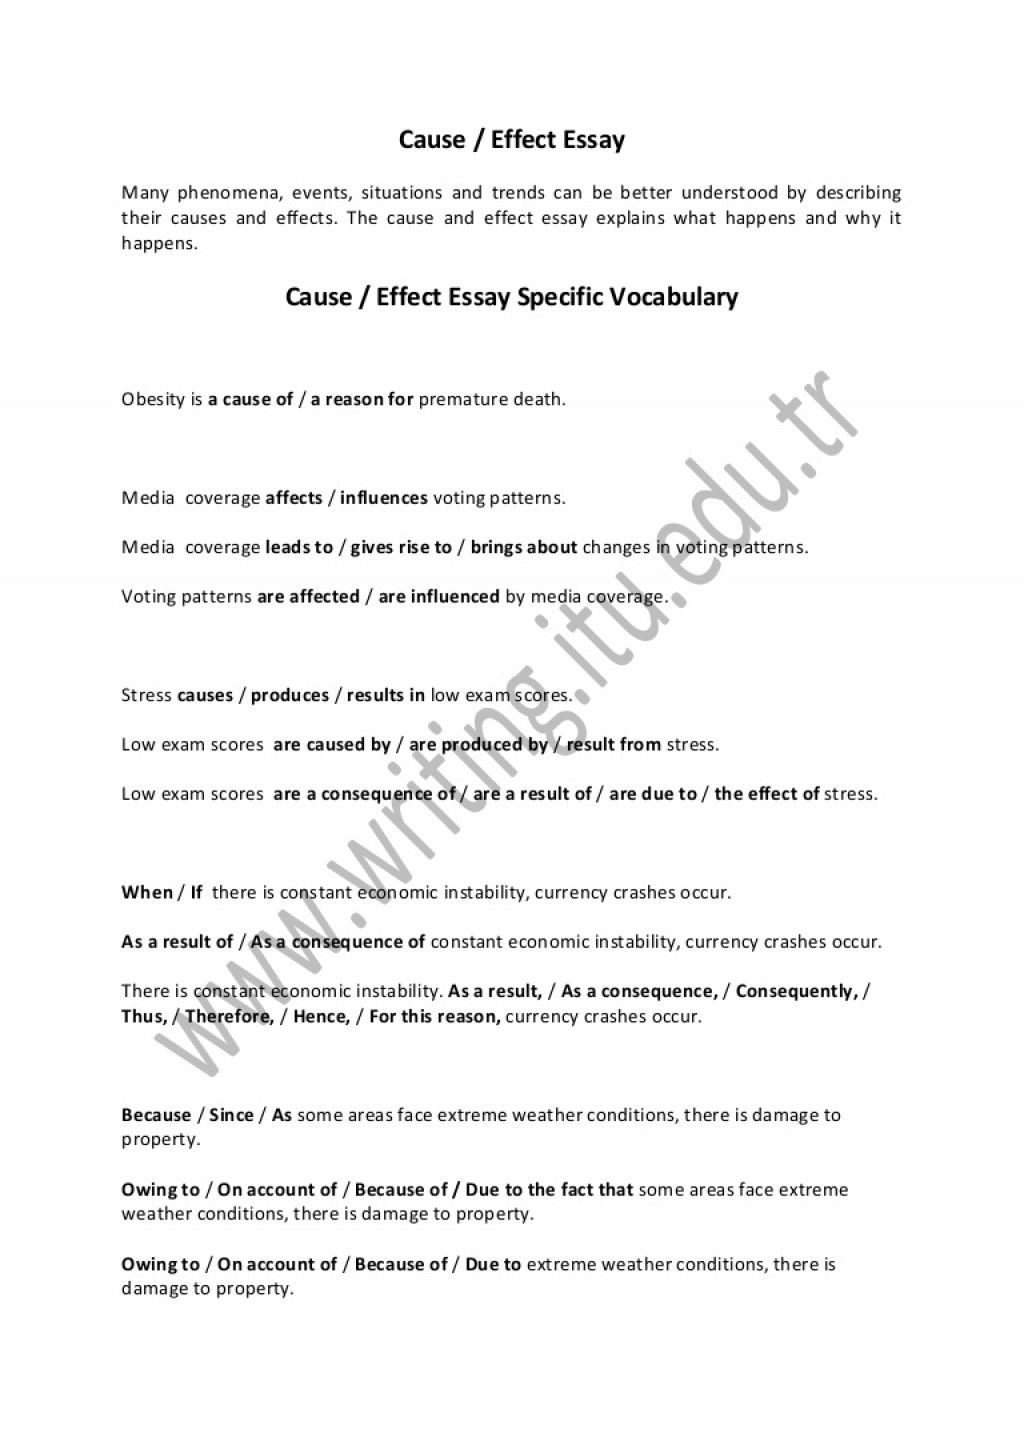 007 Causeandeffectessay Conversion Gate01 Thumbnail Essay Example How To Start Cause And Awful A Effect Examples Write Step By Powerpoint Pdf Large